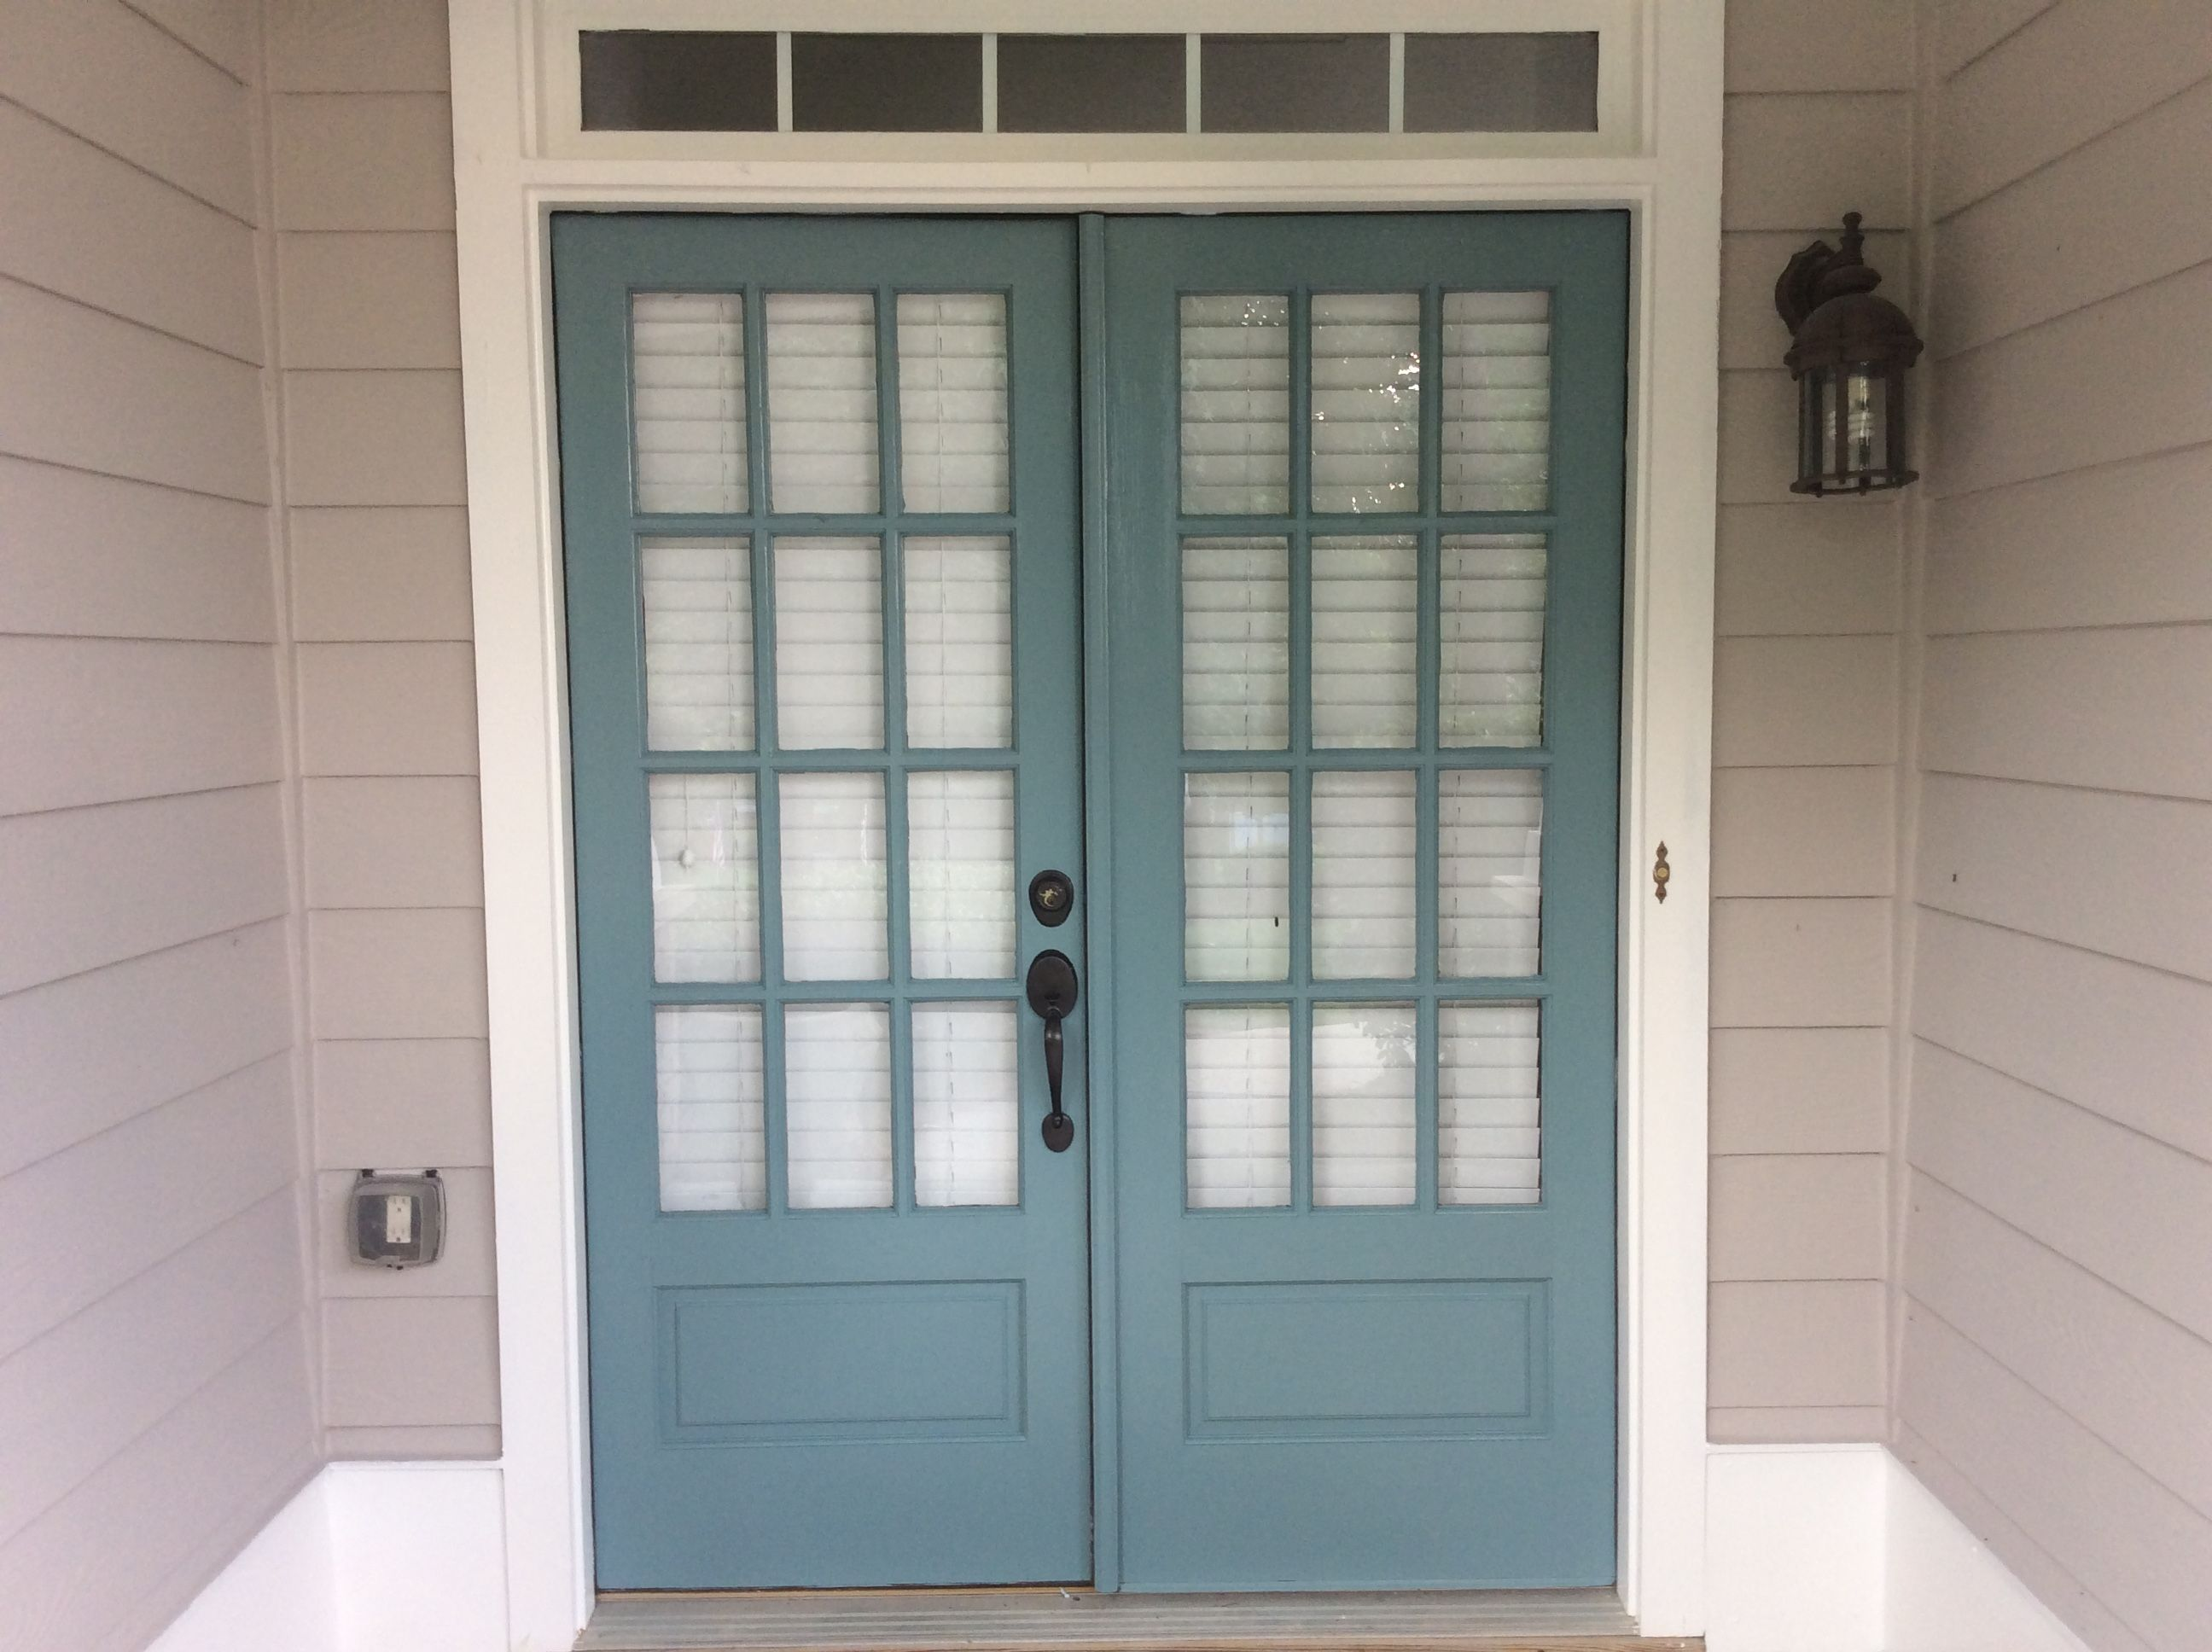 Doors sherwin williams moody blue house colors doors - Sherwin williams exterior paints ...